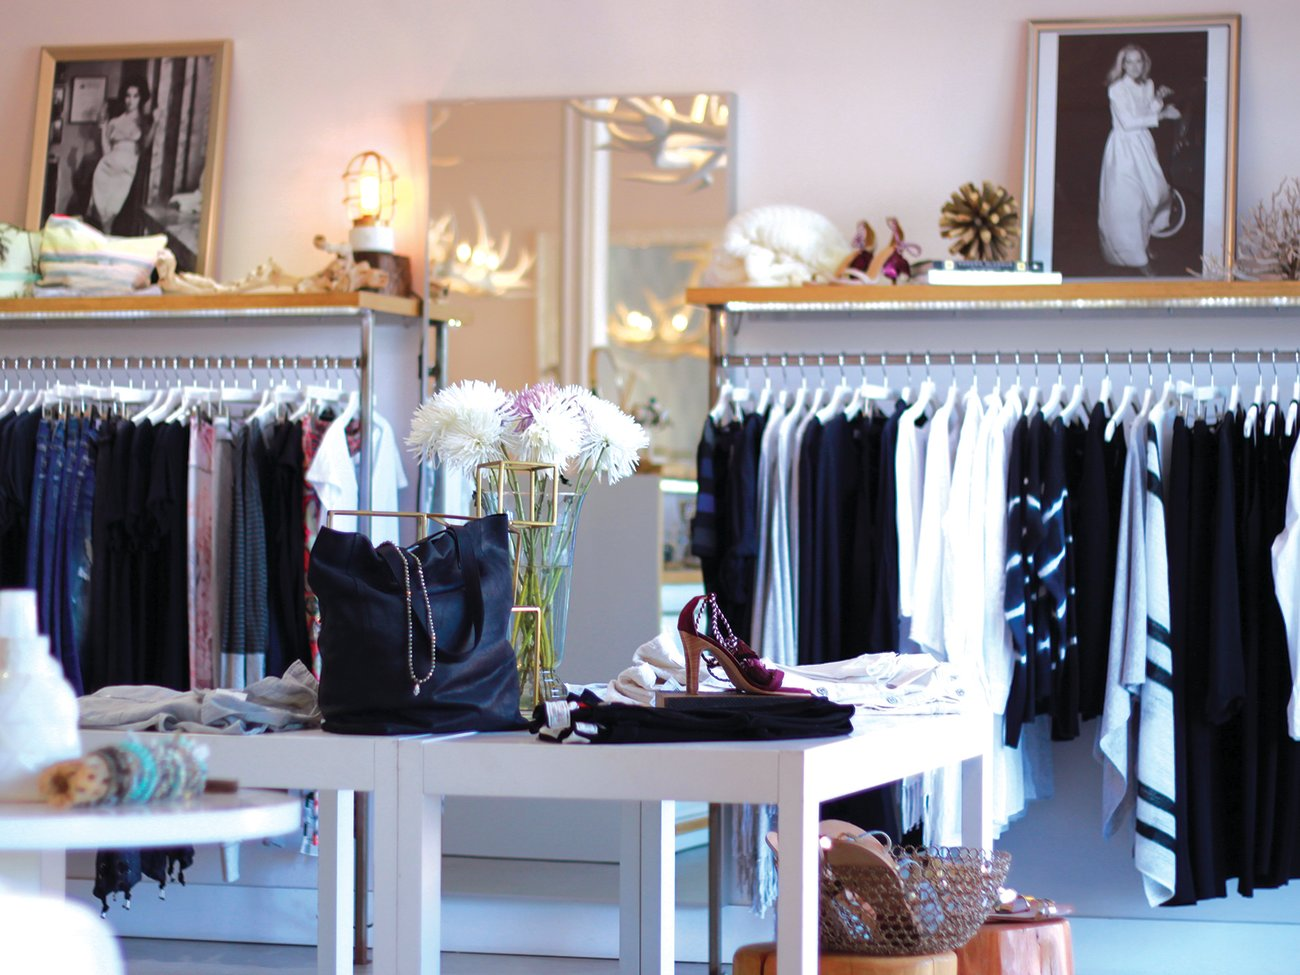 Pink Lagoon Boutique Store in San Diego